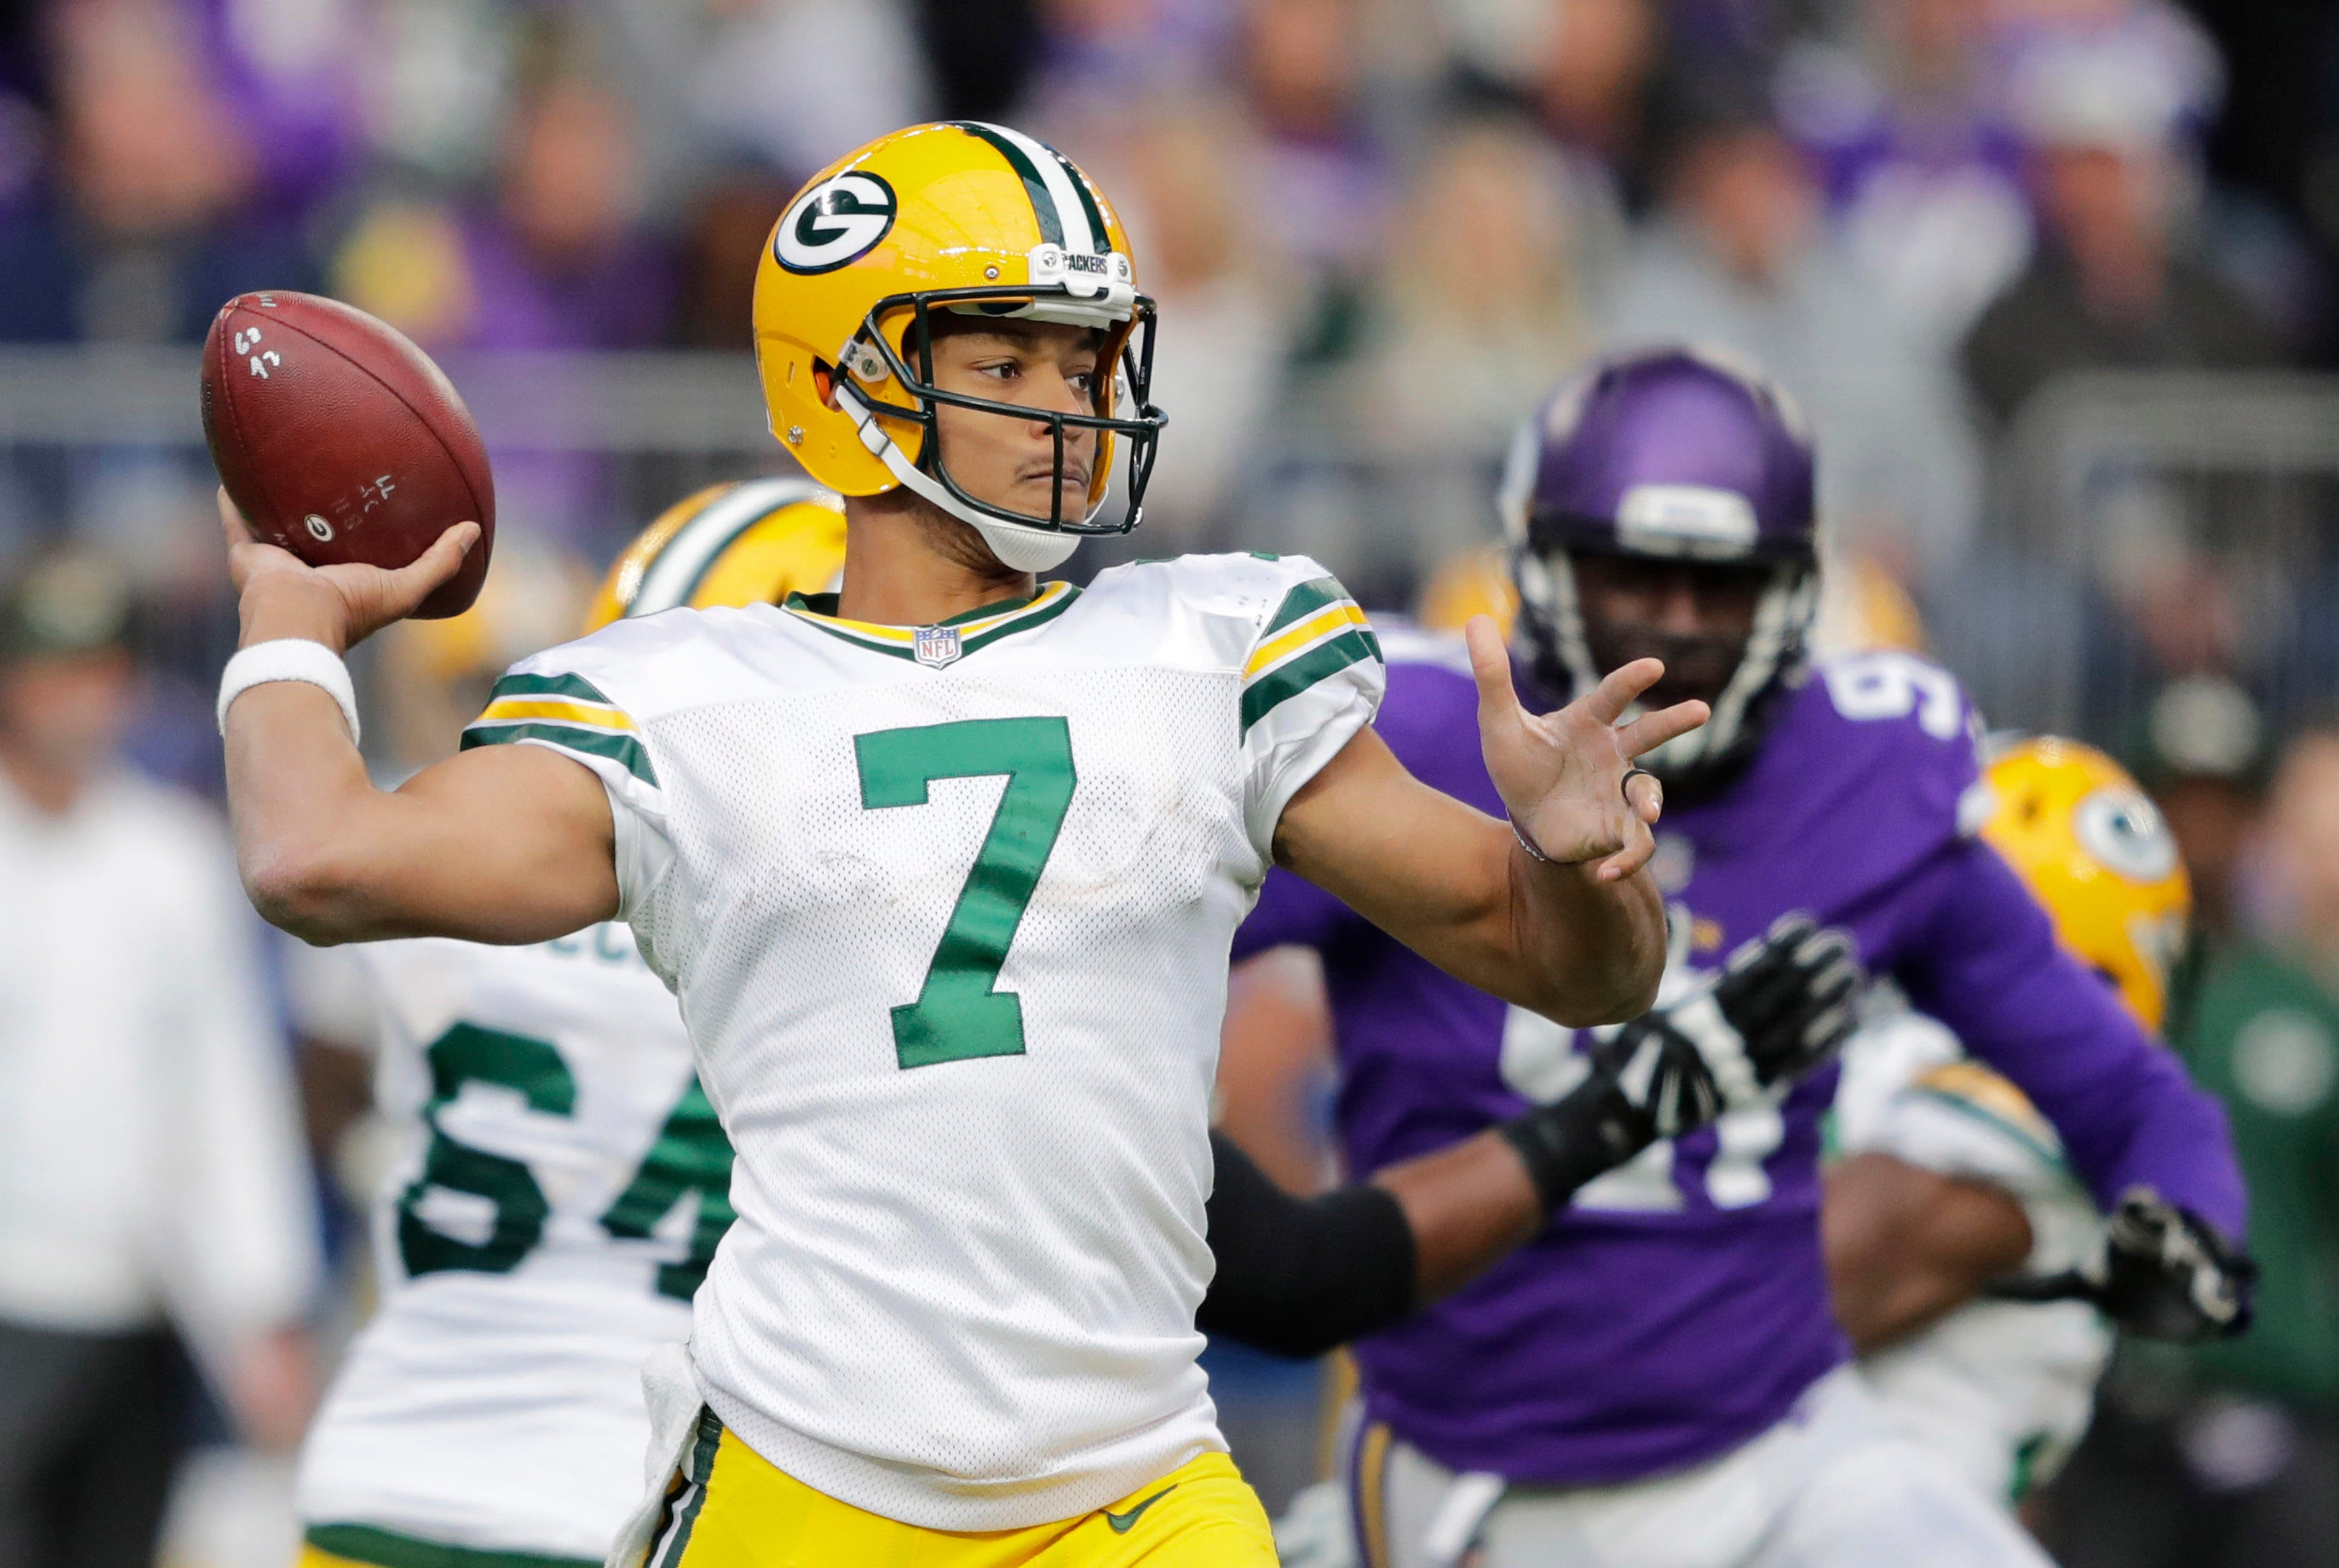 What can we expect from the Packers' offense without Aaron Rodgers?